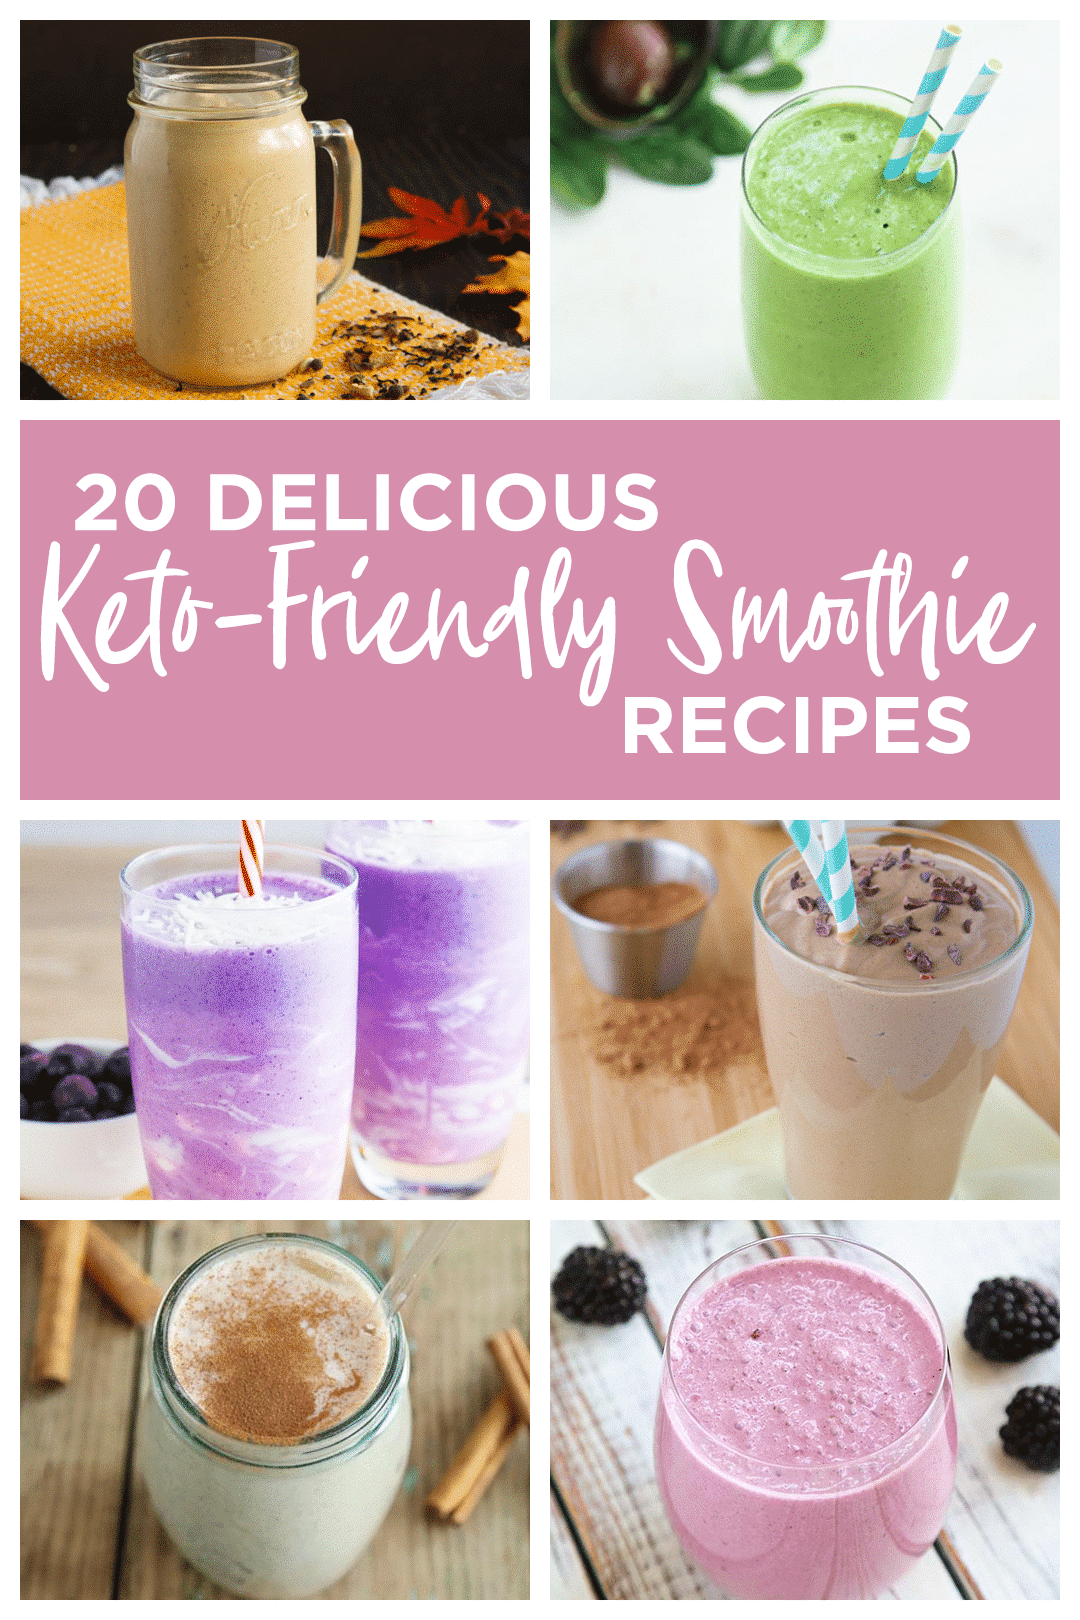 Easy Keto Smoothie Recipes: 20 Delicious Recipes